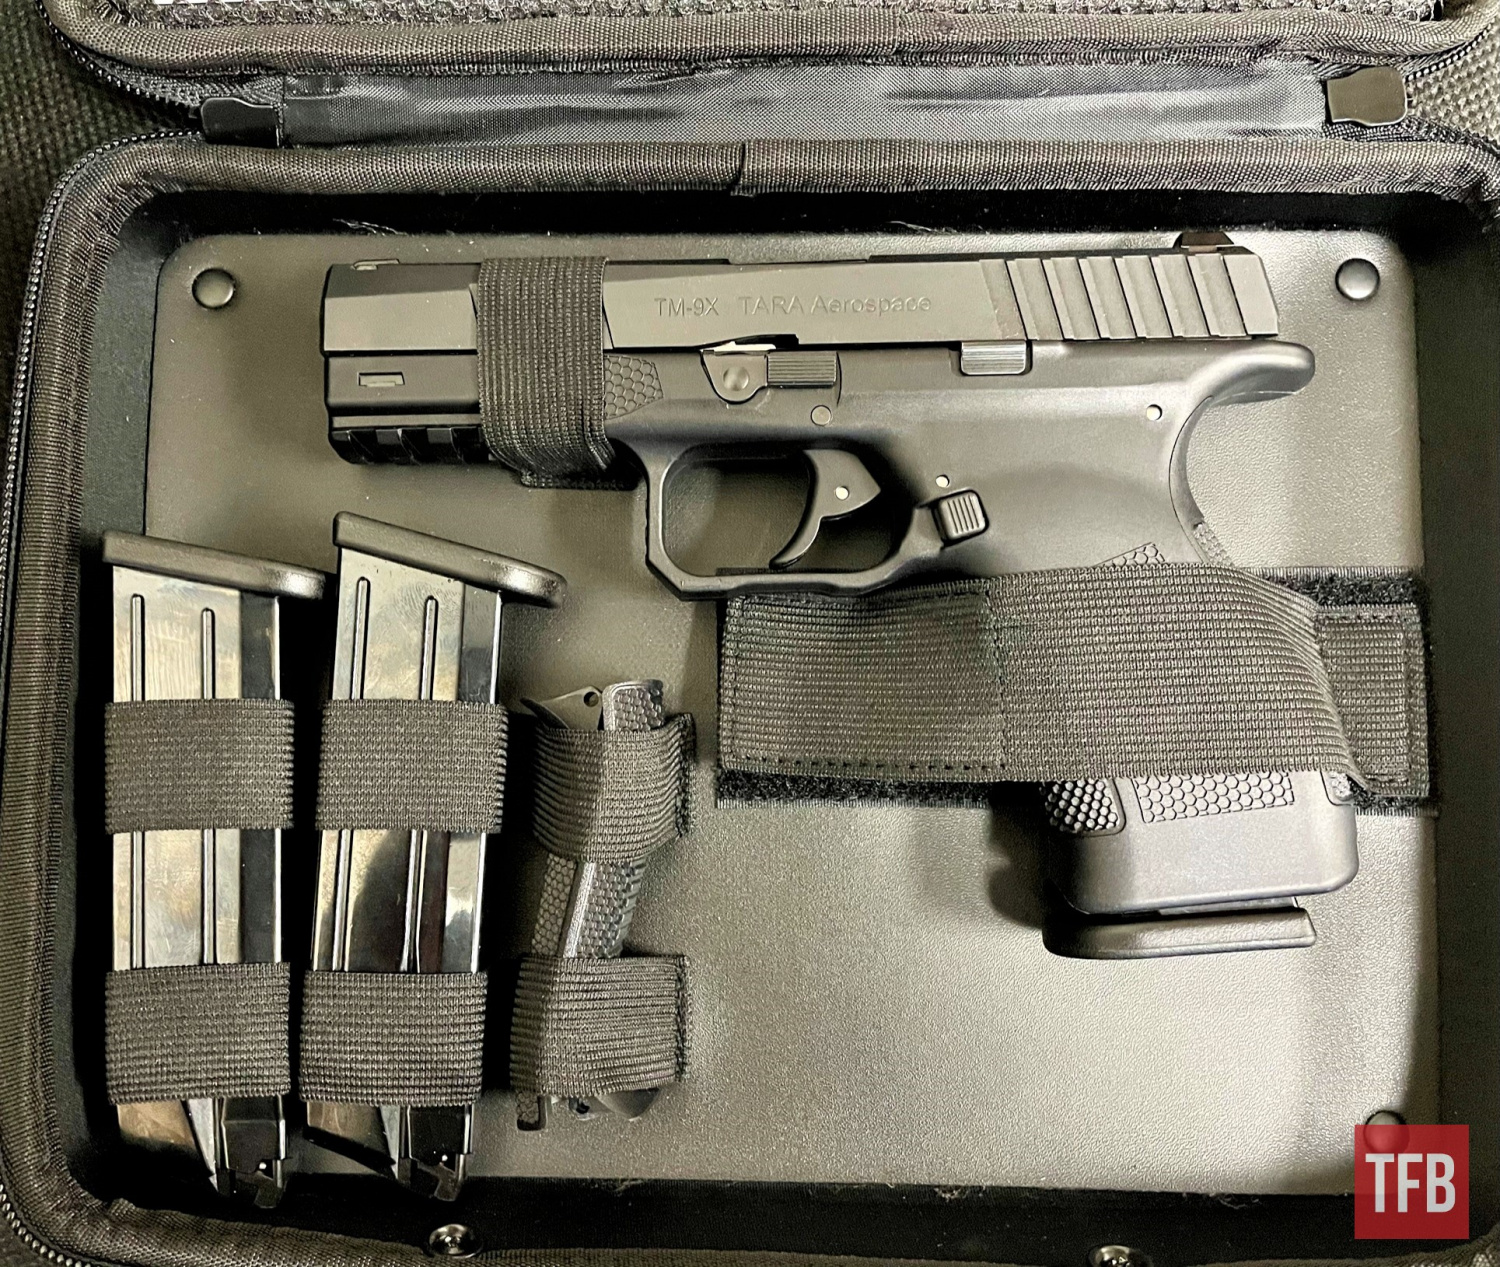 Unzipping the case revealed the TM-9, along with its three magazines and alternate backstrap sizing options.